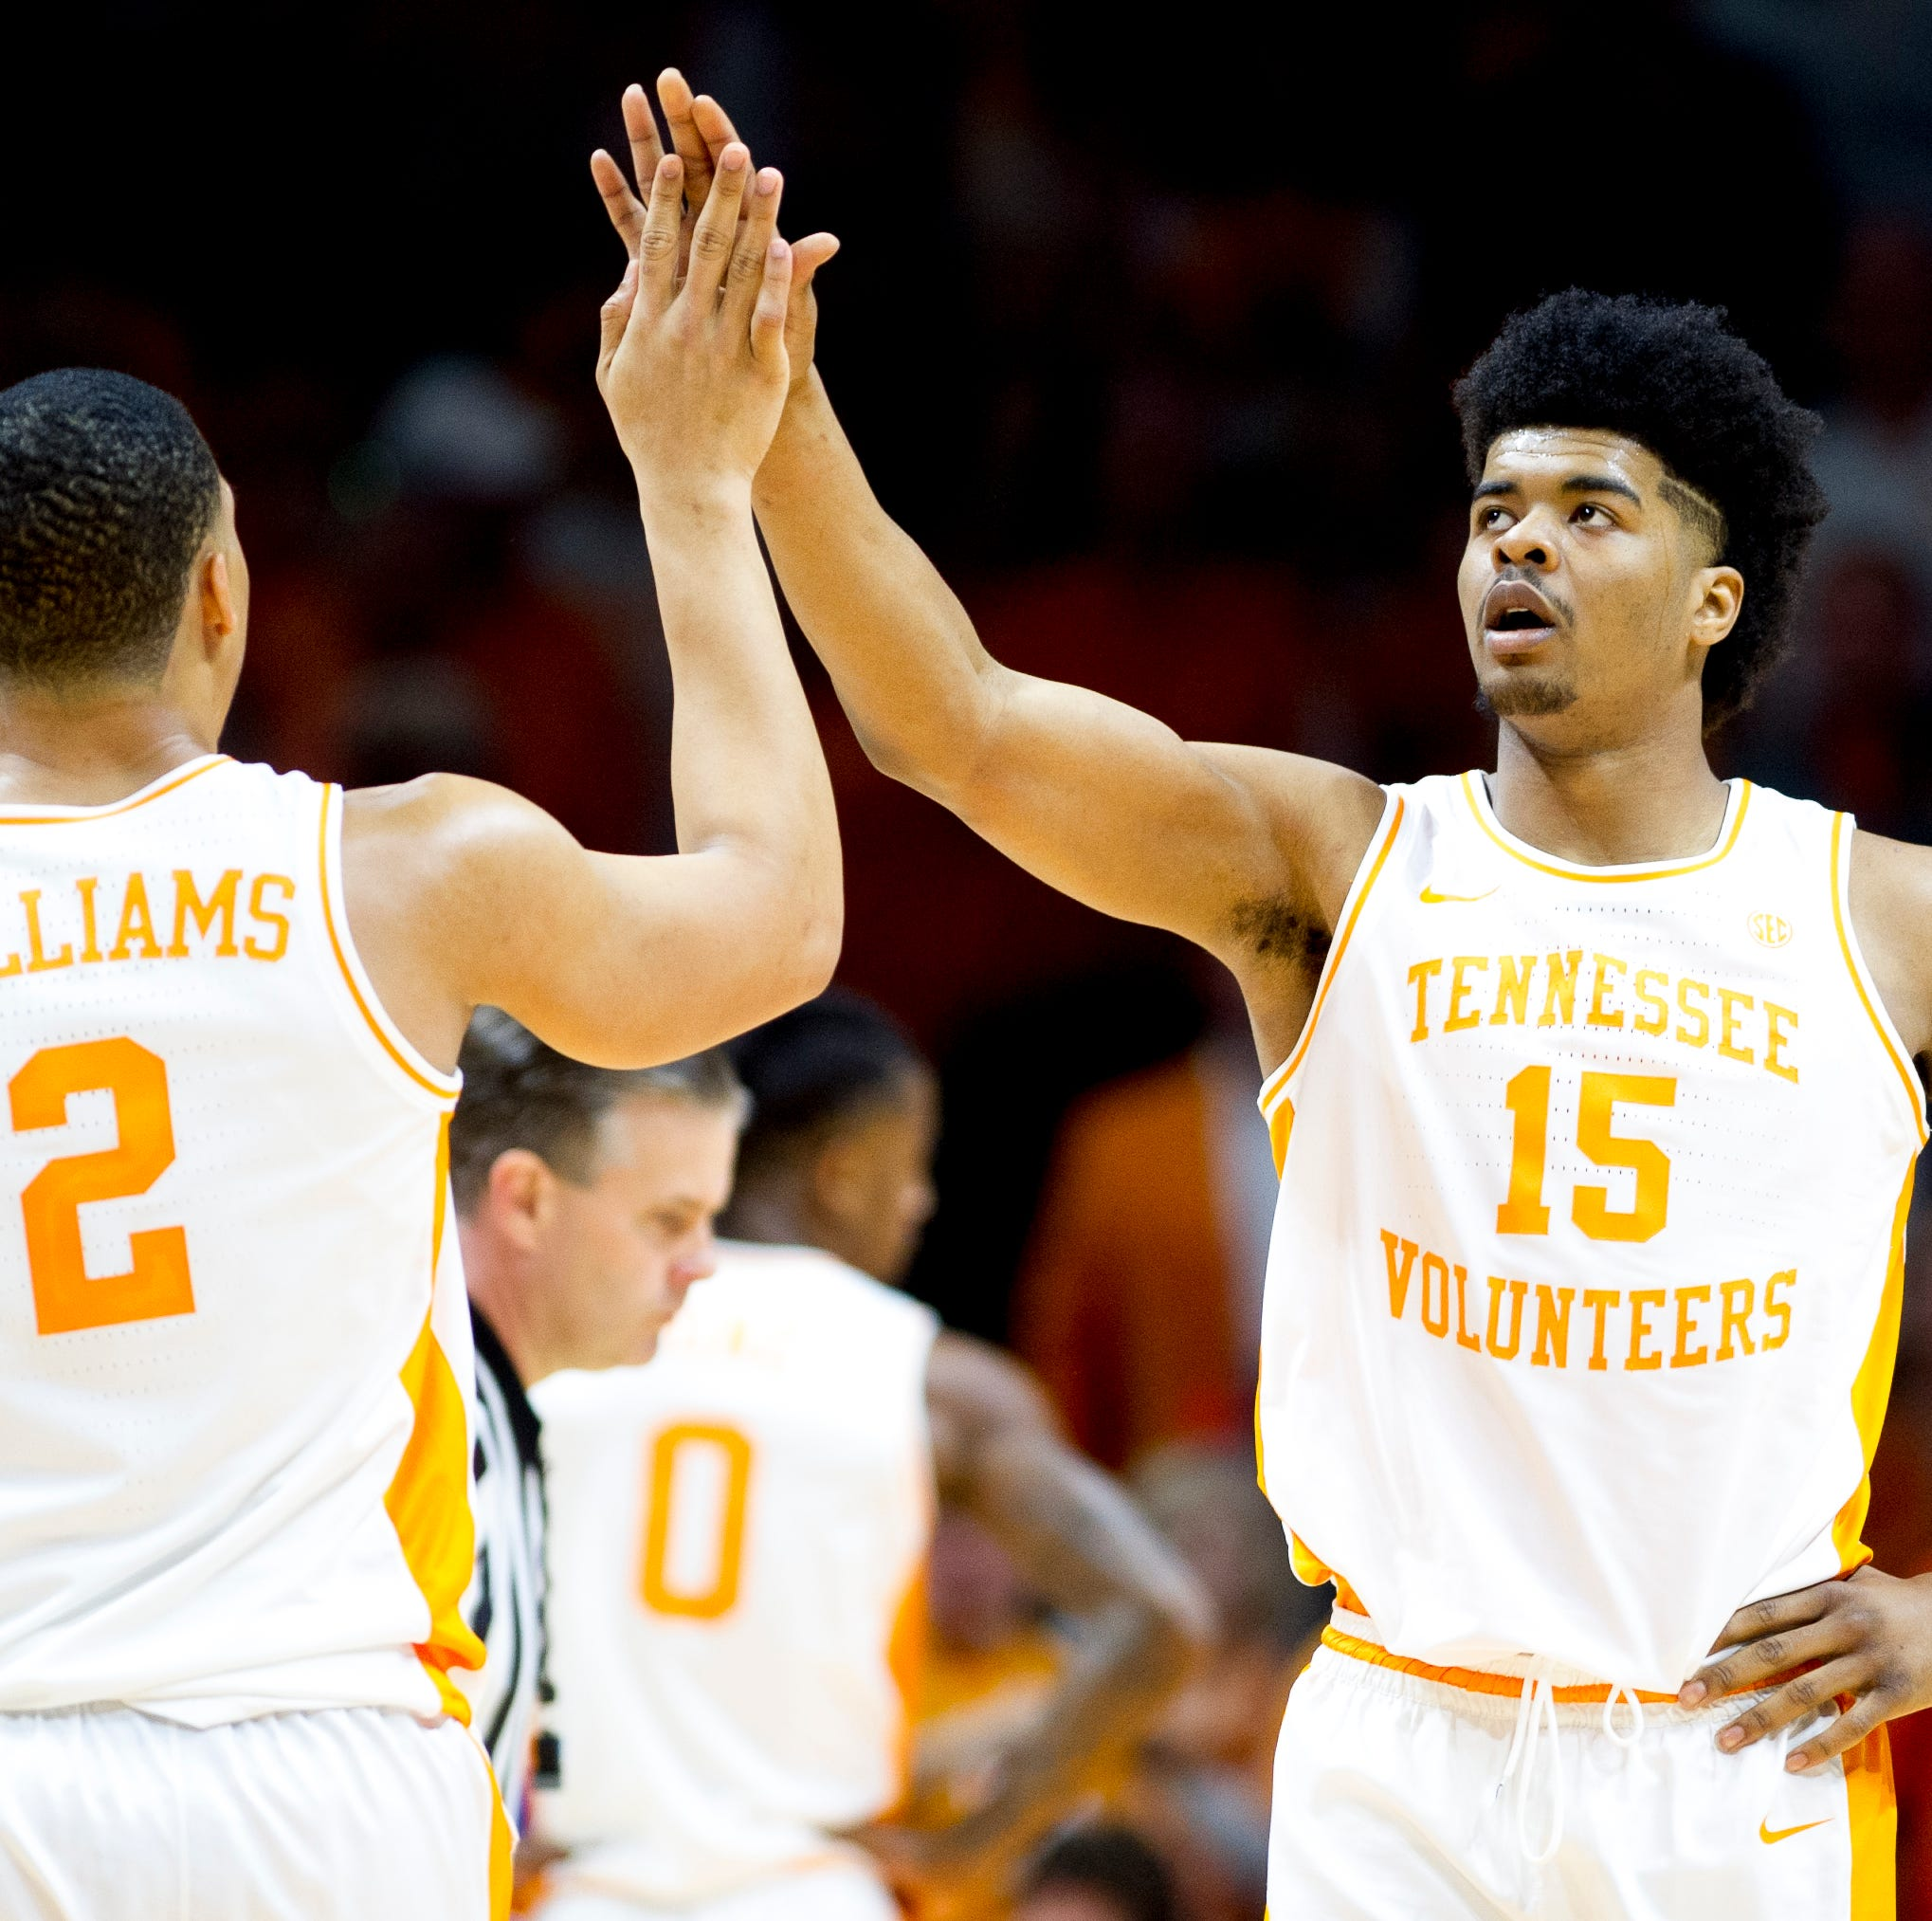 Tennessee Vols expect a 'sea of orange' at the SEC Tournament